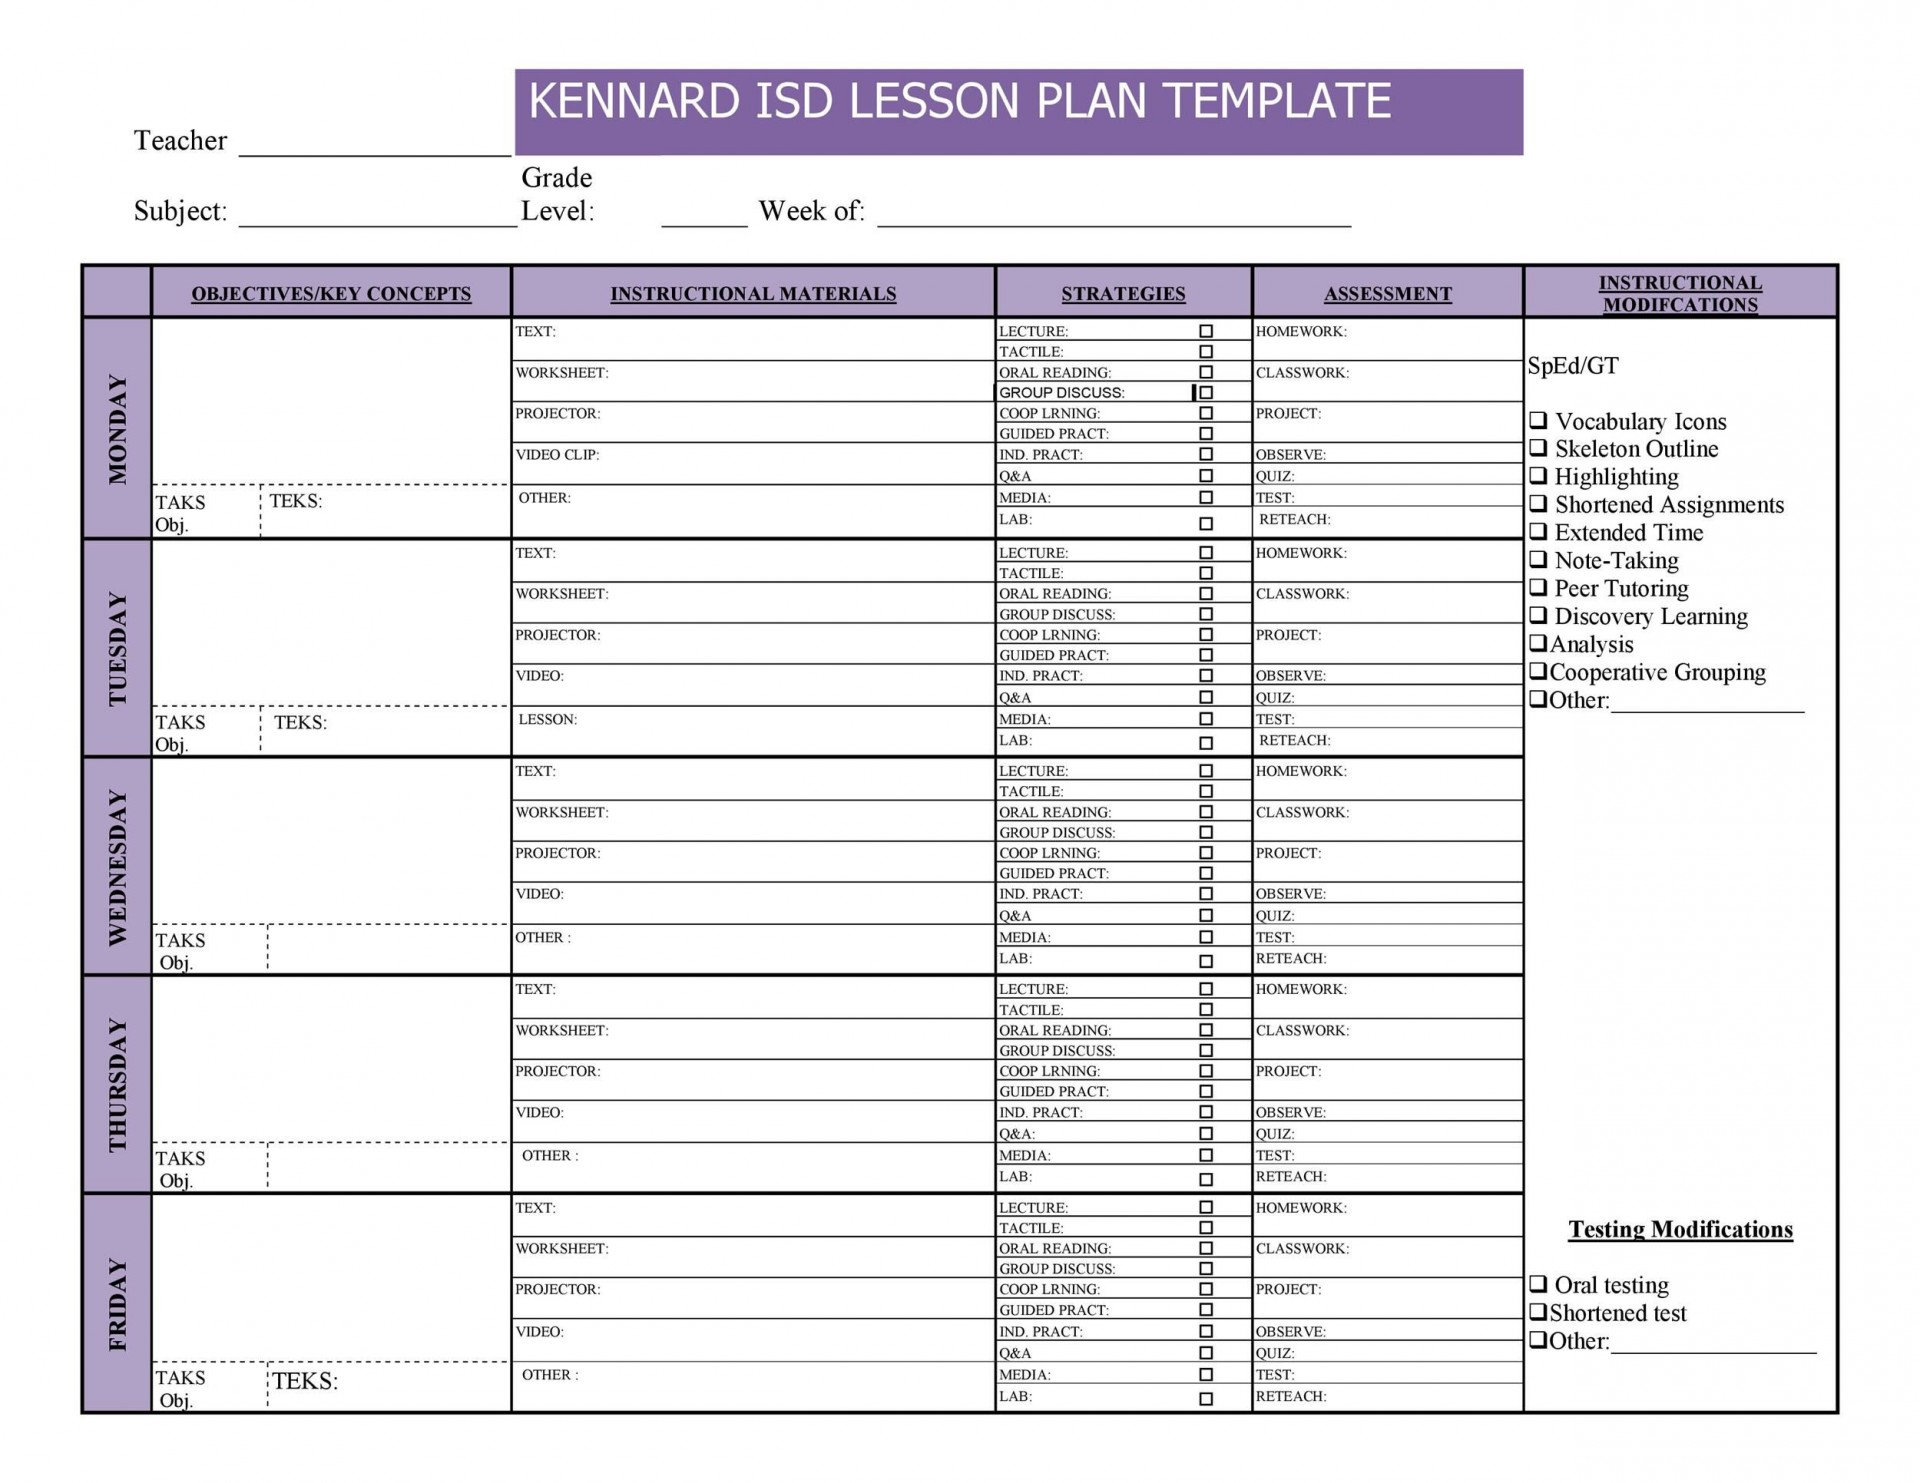 008 Outstanding Lesson Plan Template Excel Free Highest Clarity 1920